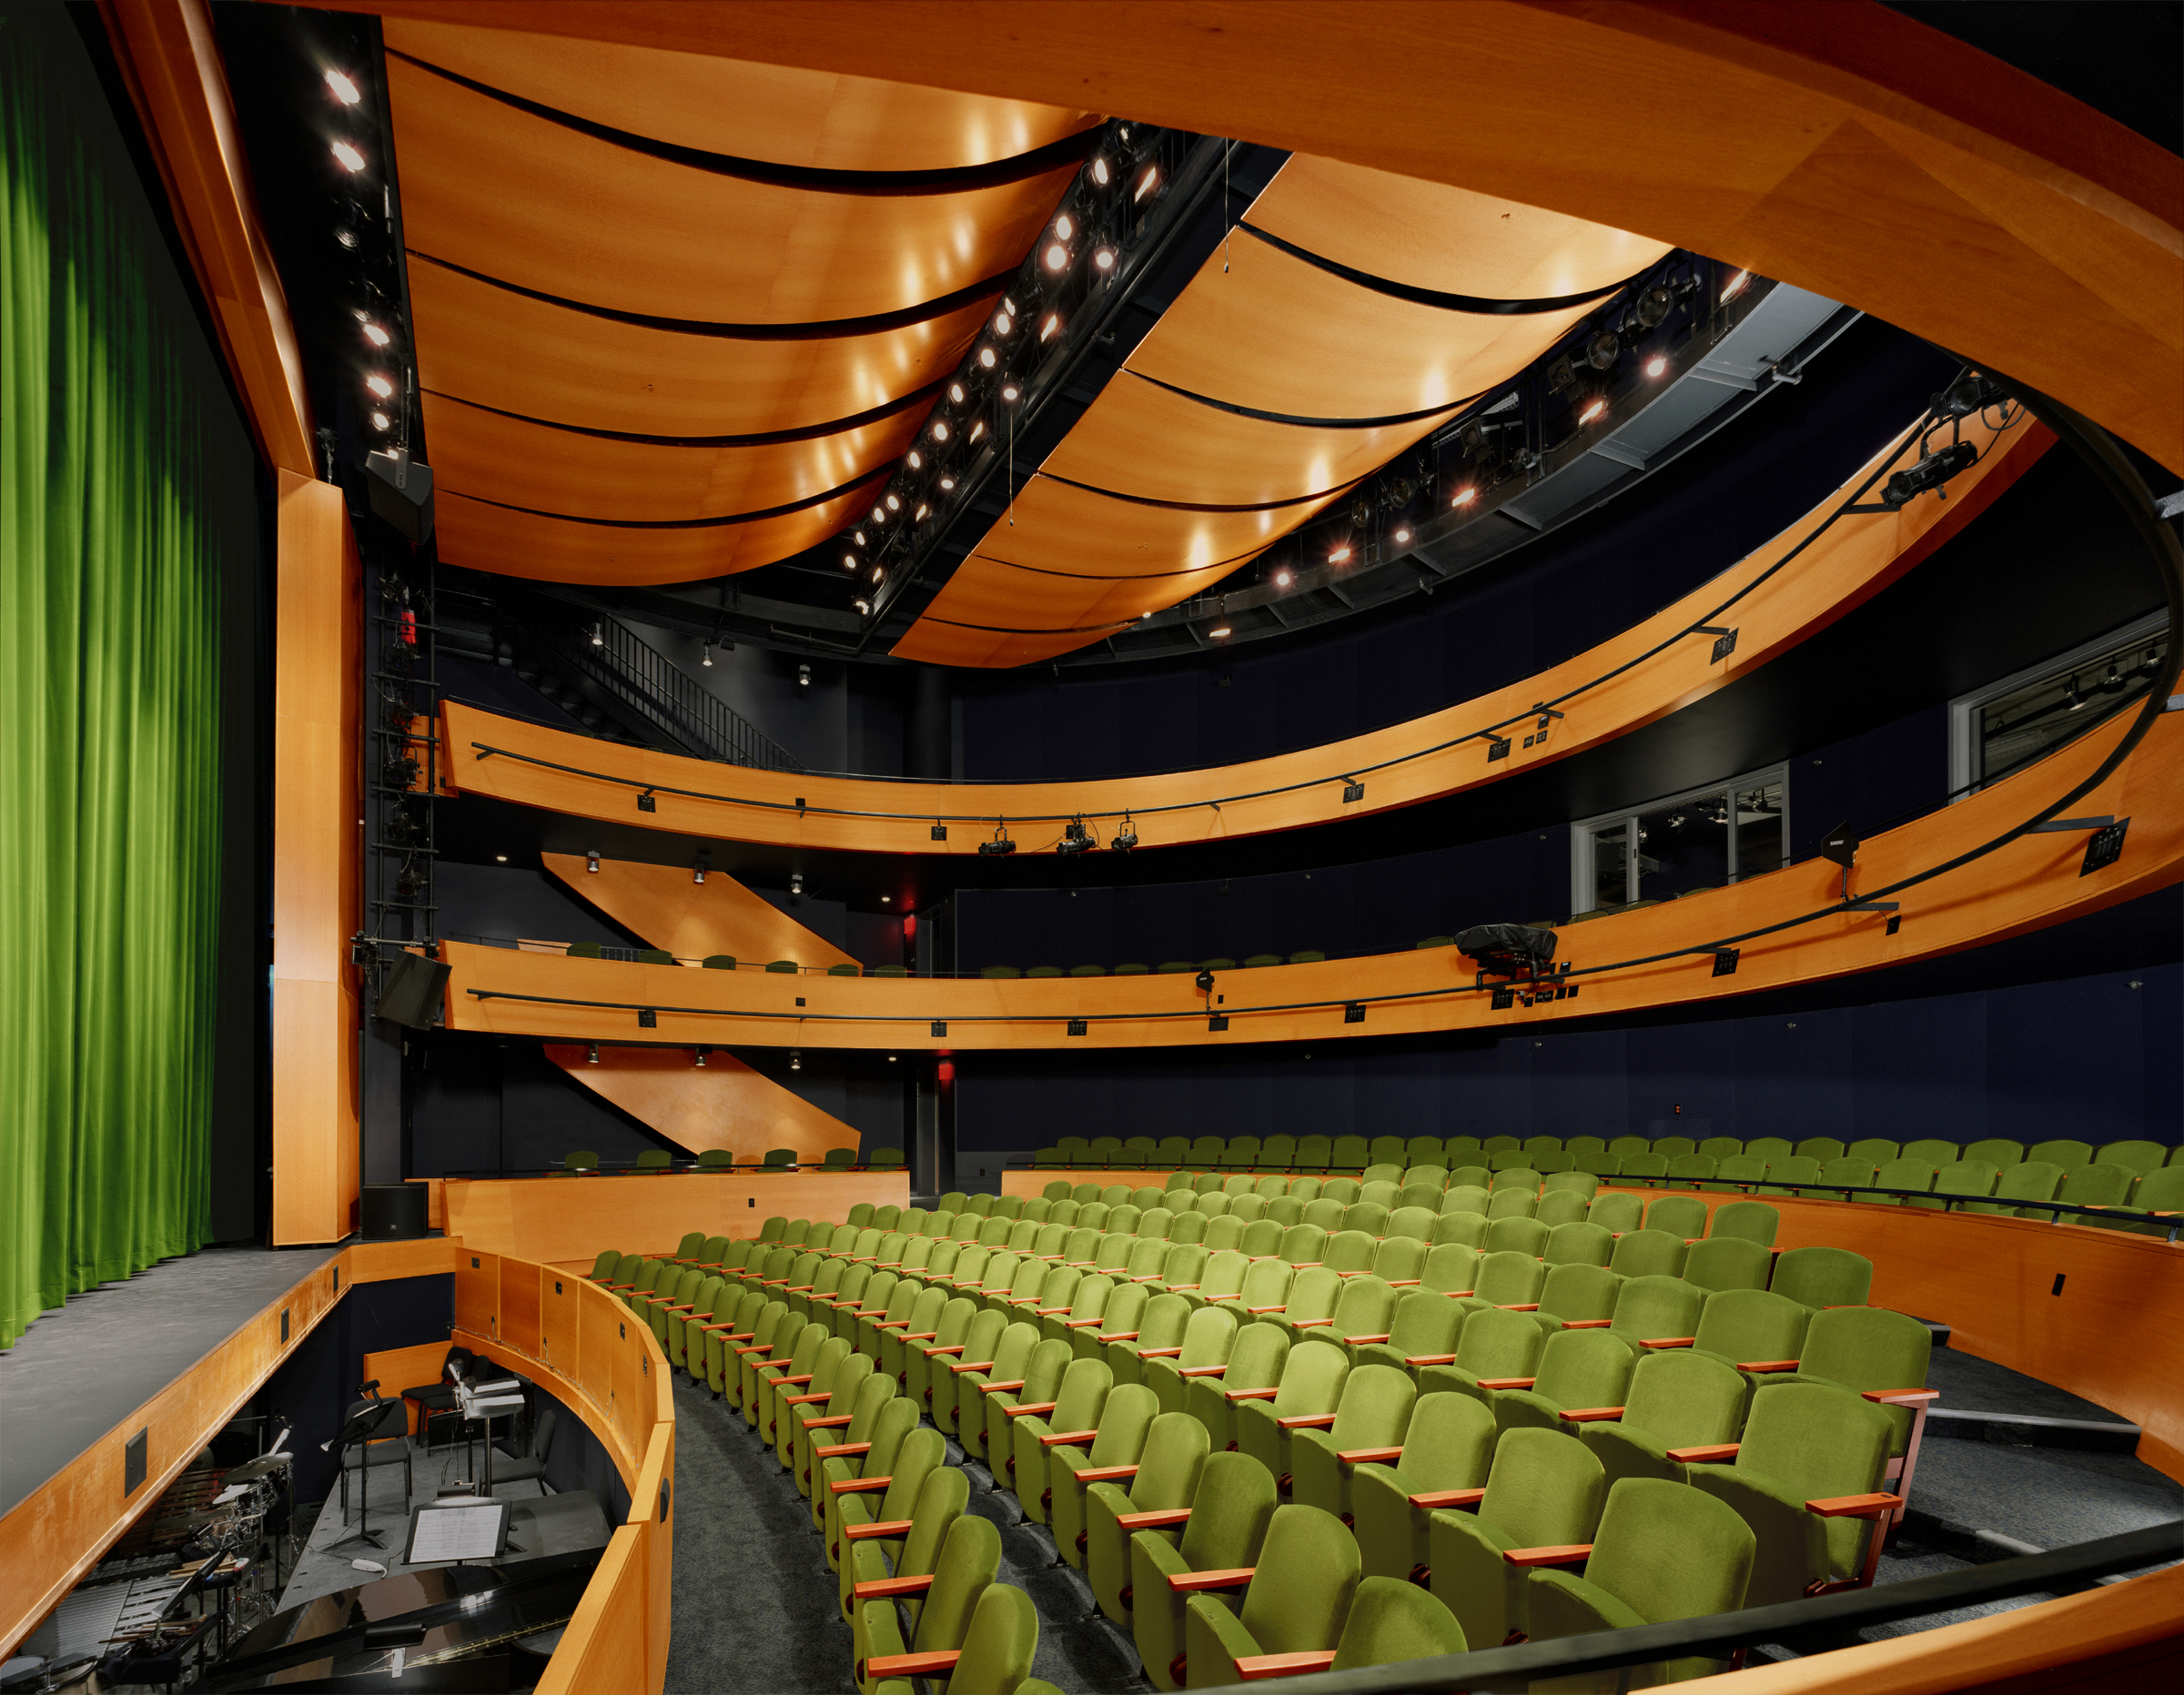 84413-int-theater-orchestra.jpg